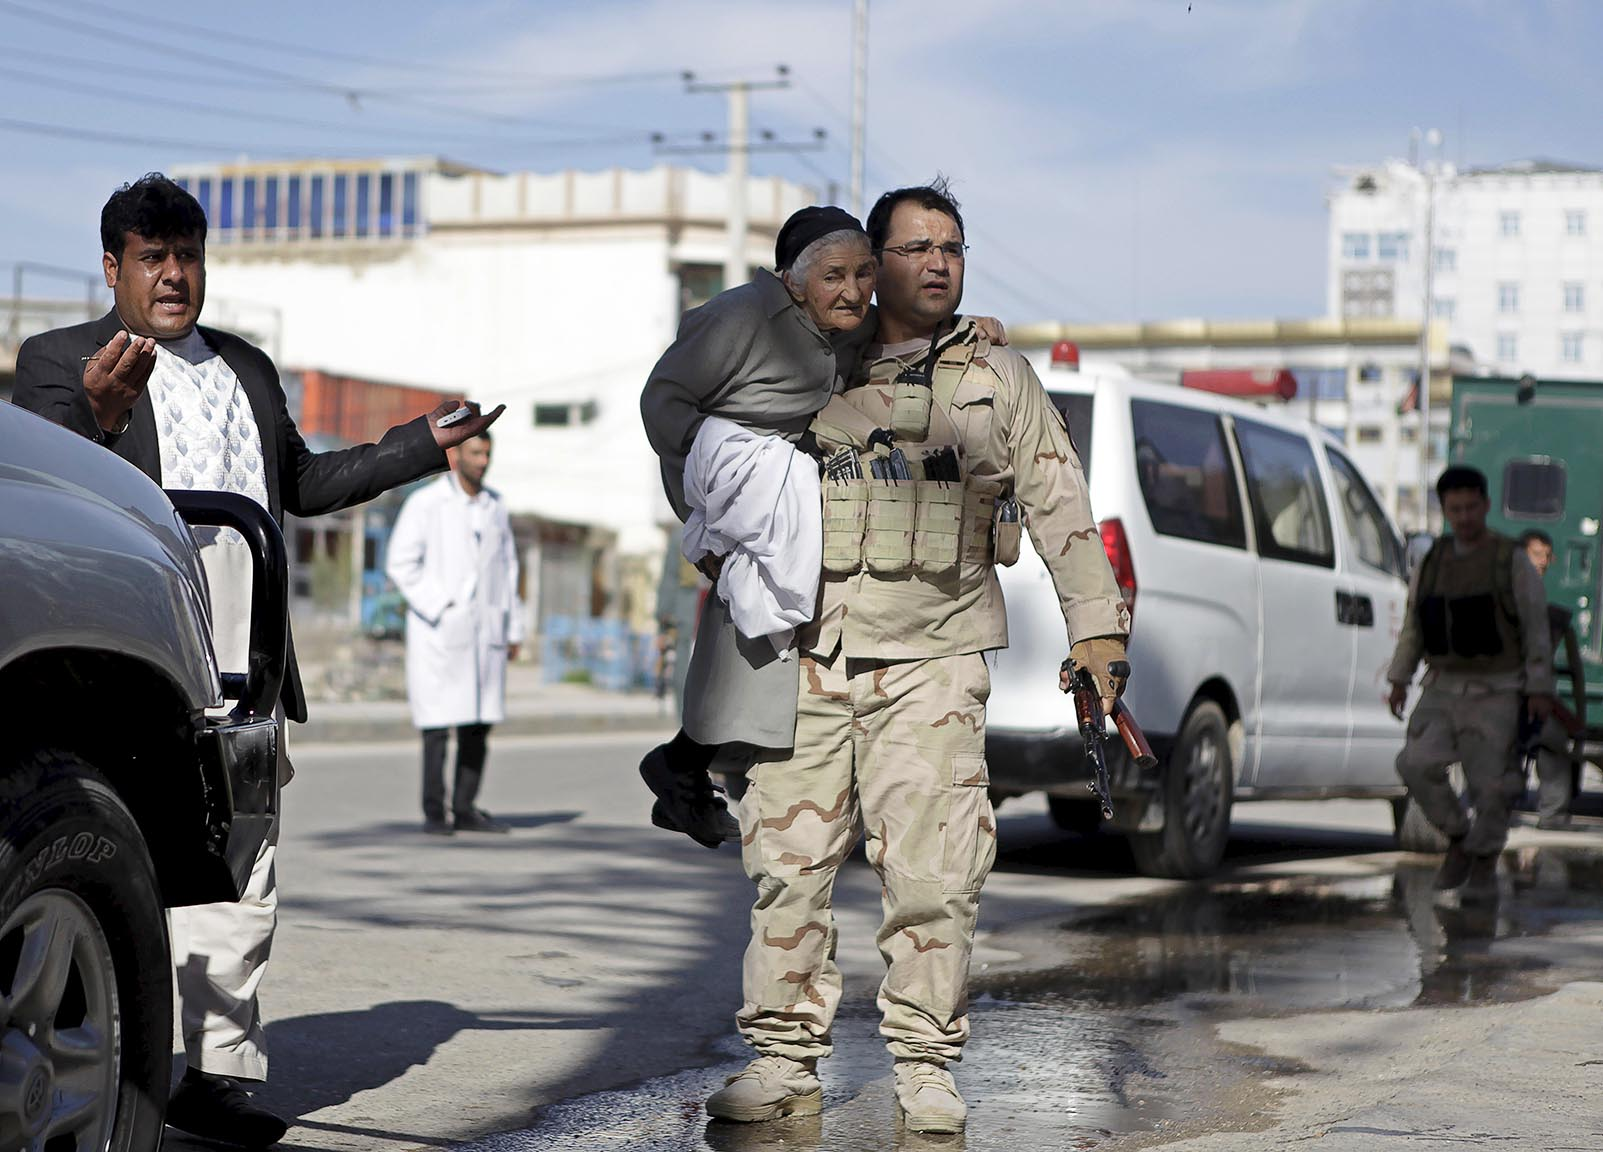 A member of the Afghan security force holds a woman while rescuing her from the site of an attack in Mazar-i-Sharif